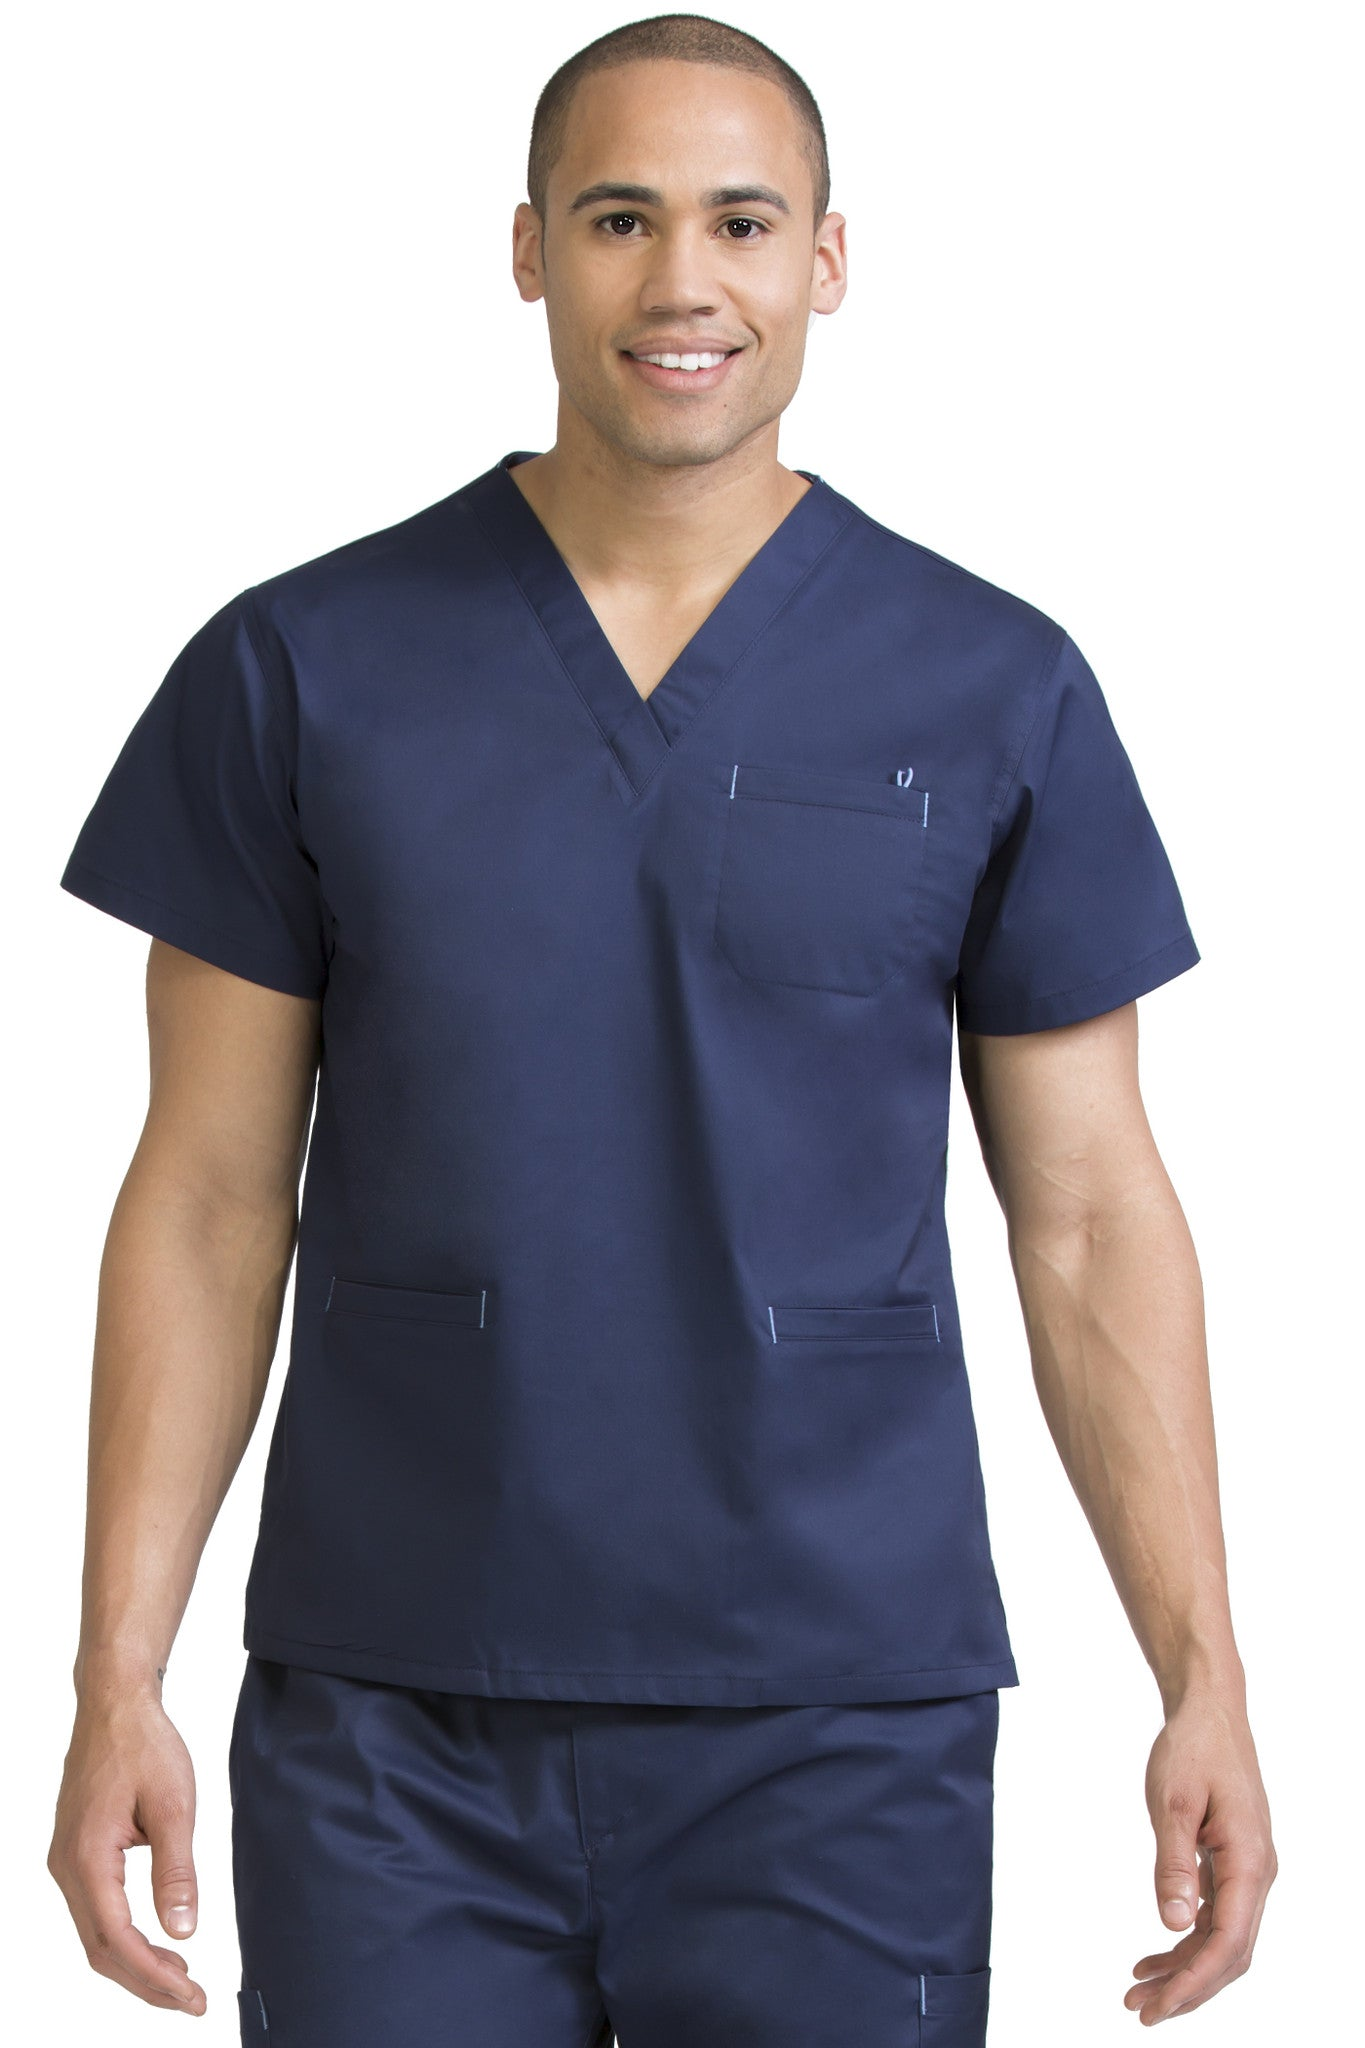 Medcouture Men's 3 Pocket Navy Scrub Top- 8471